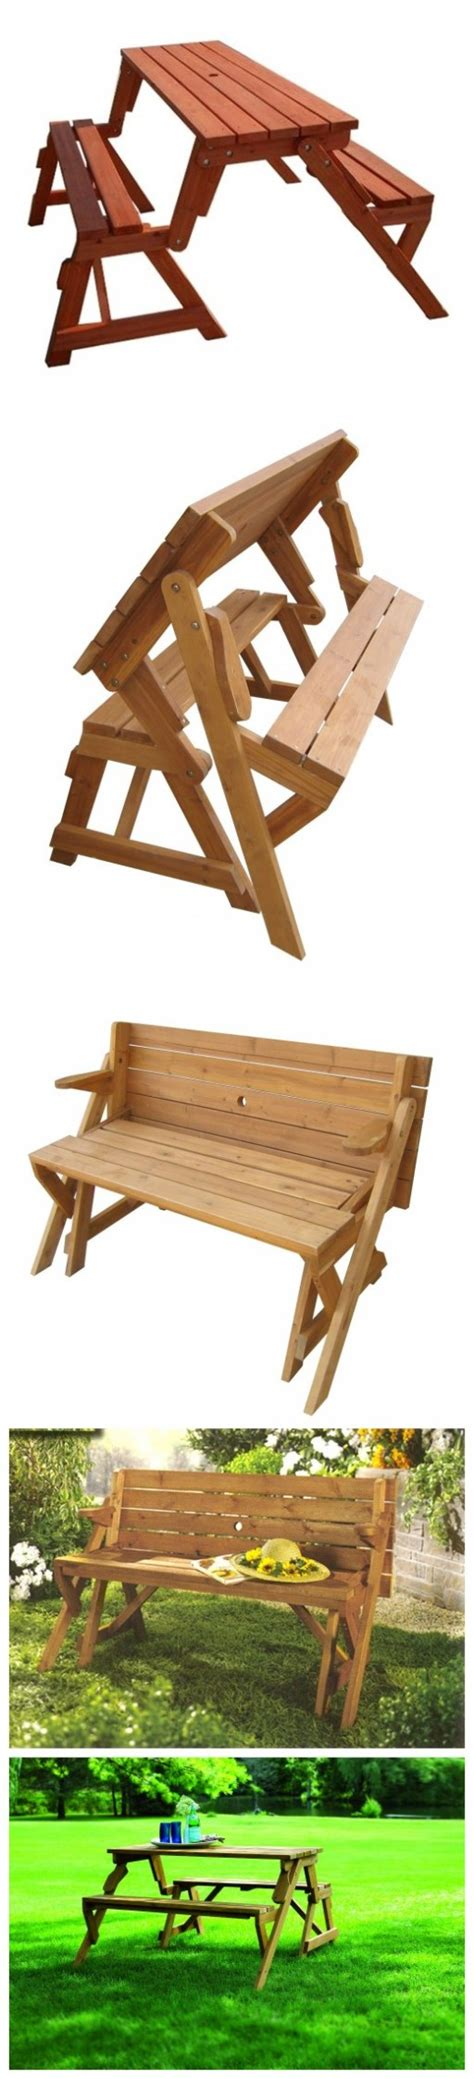 diy picnic bench diy 2 in 1 convertible folding bench and picnic table